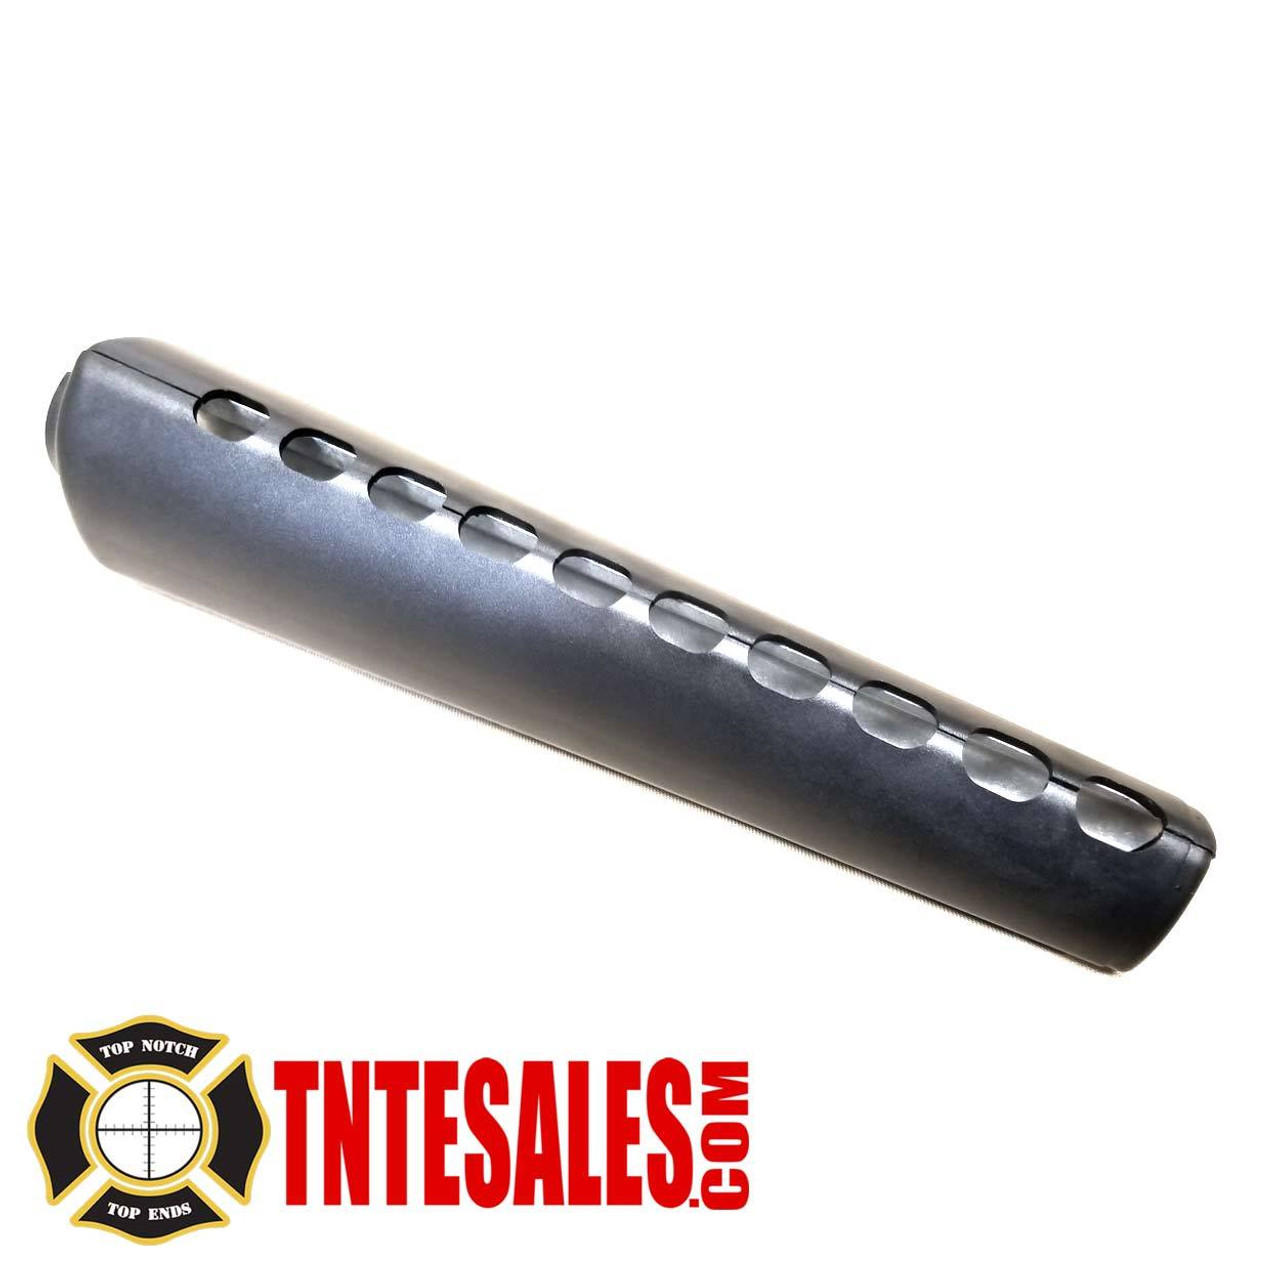 Retro A1 Style Rifle Triangle Two Piece Handguards